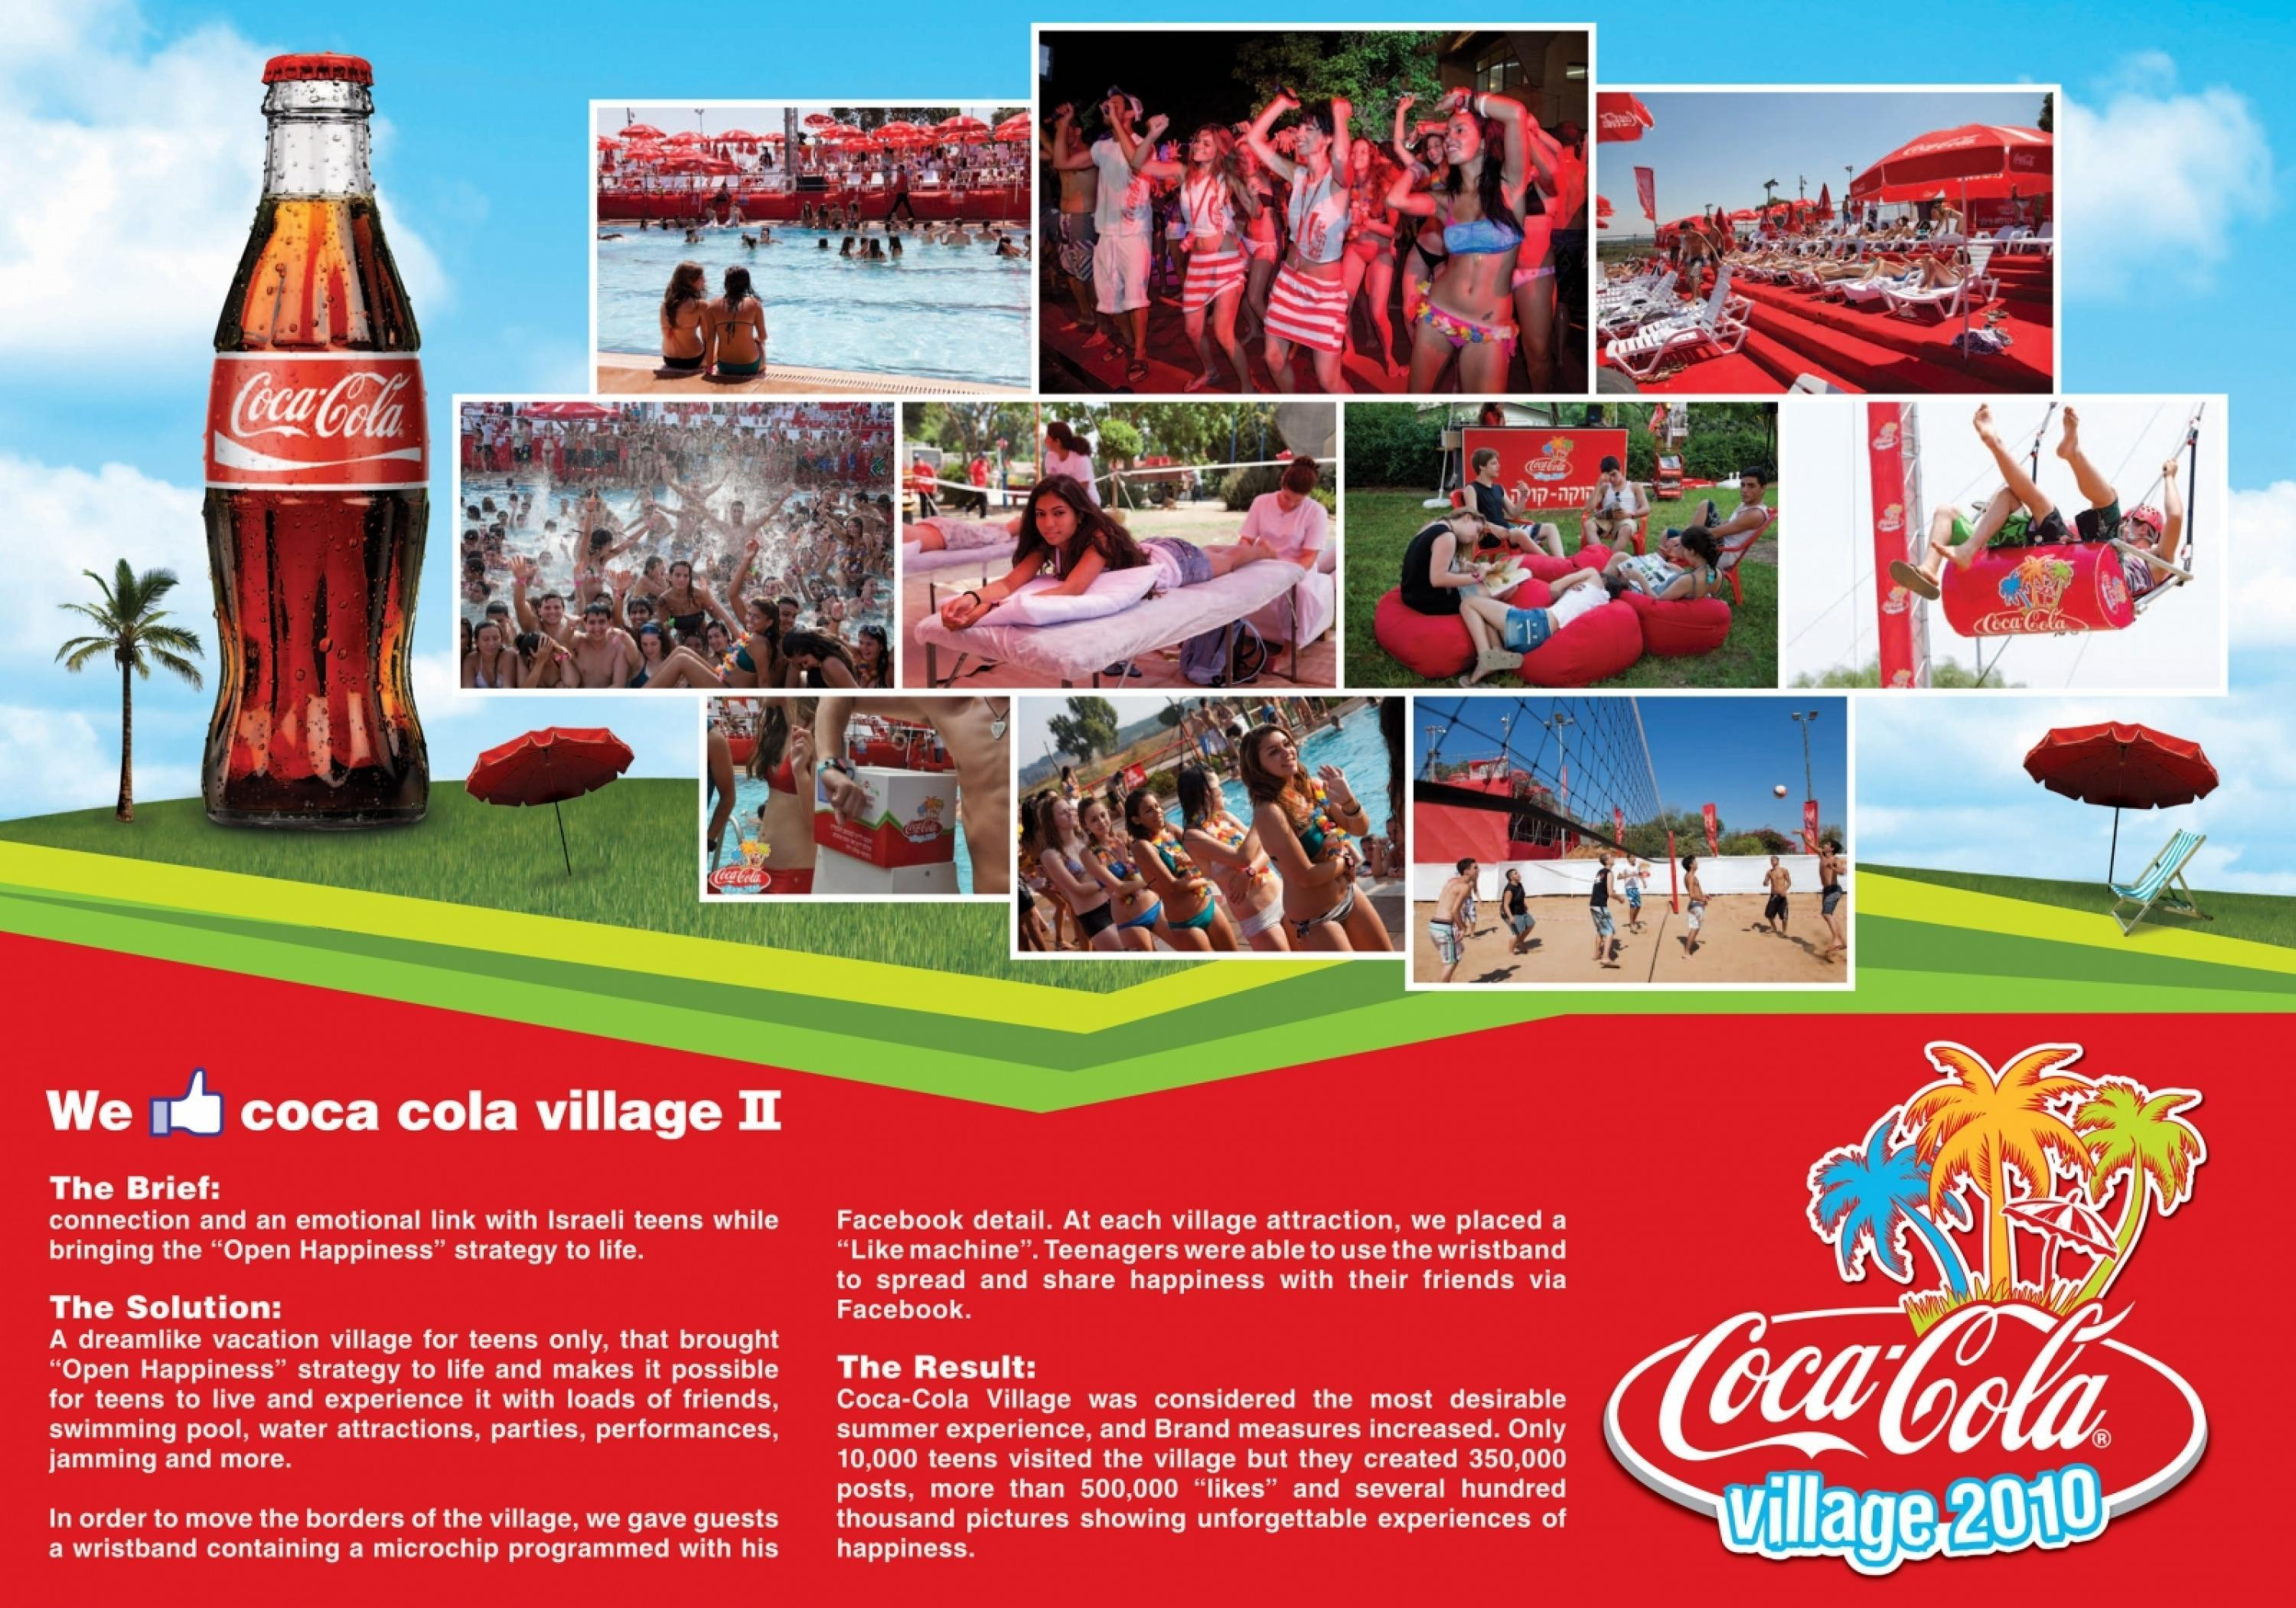 coca cola managerial economics paper 01012012 the positive economic impact of the coca-cola company is felt by thousands of communities around the world.